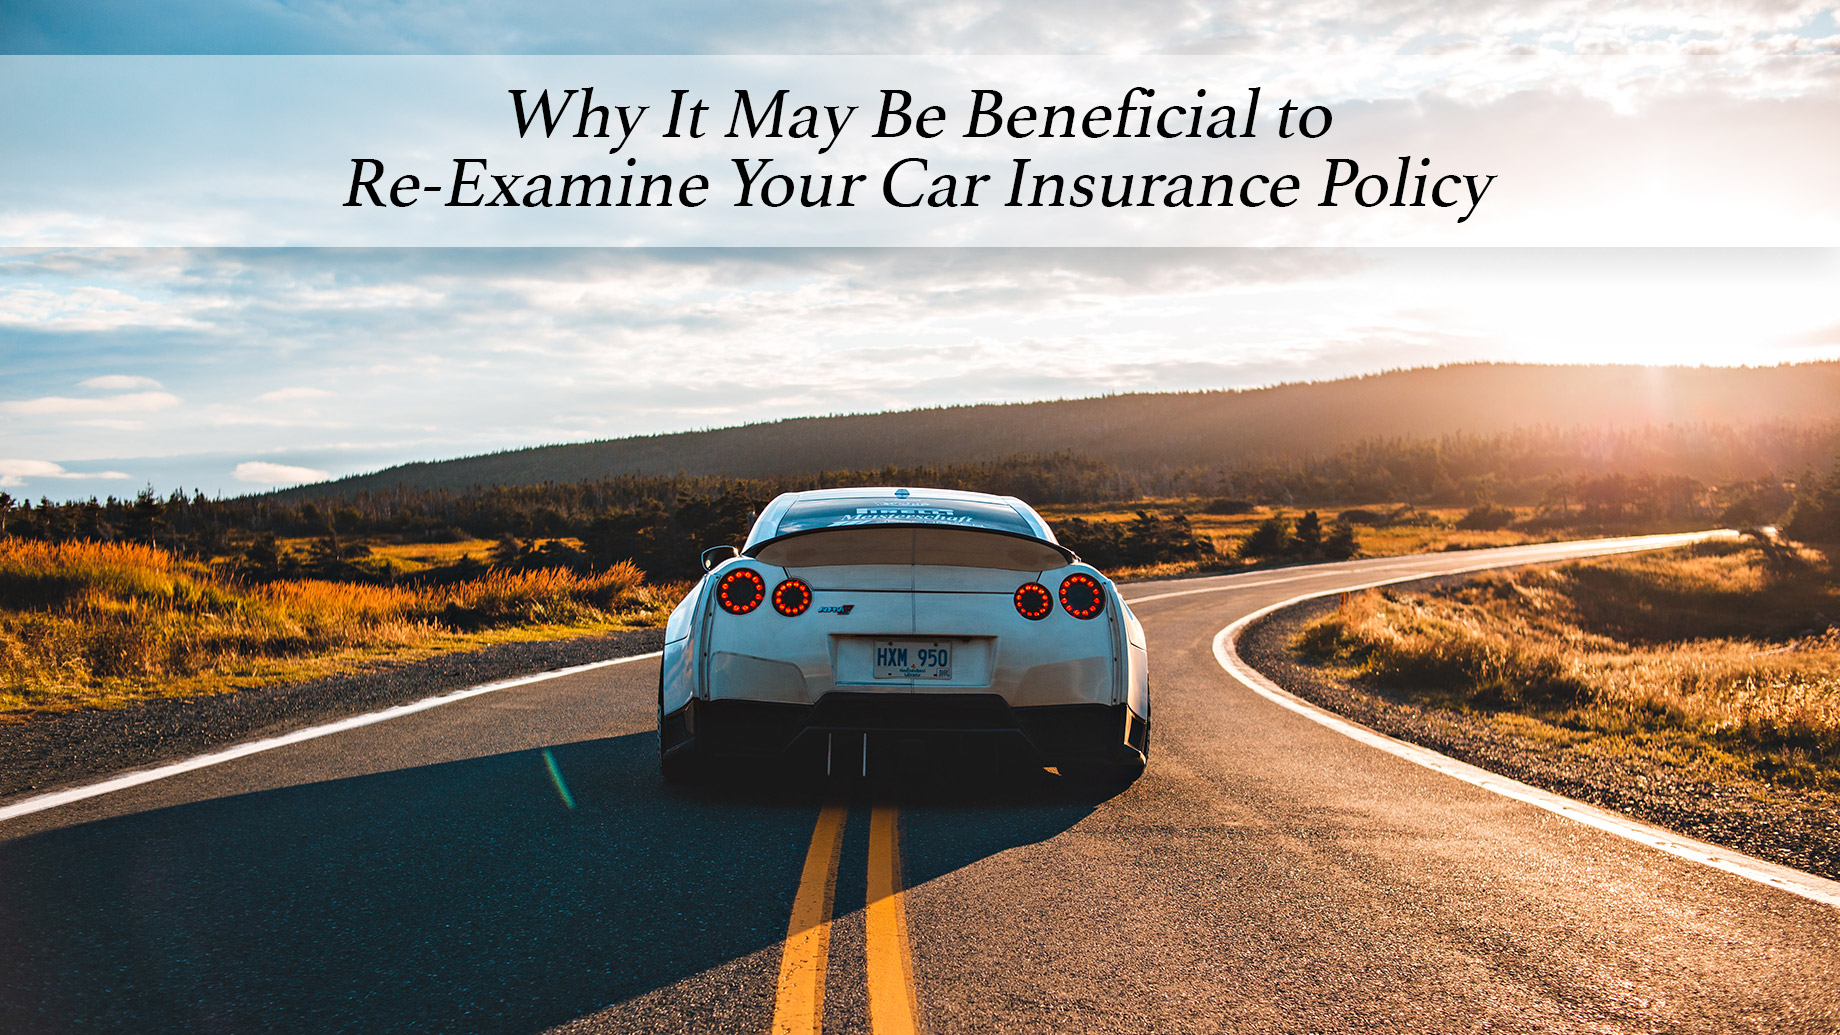 Why It May Be Beneficial to Re-Examine Your Car Insurance Policy